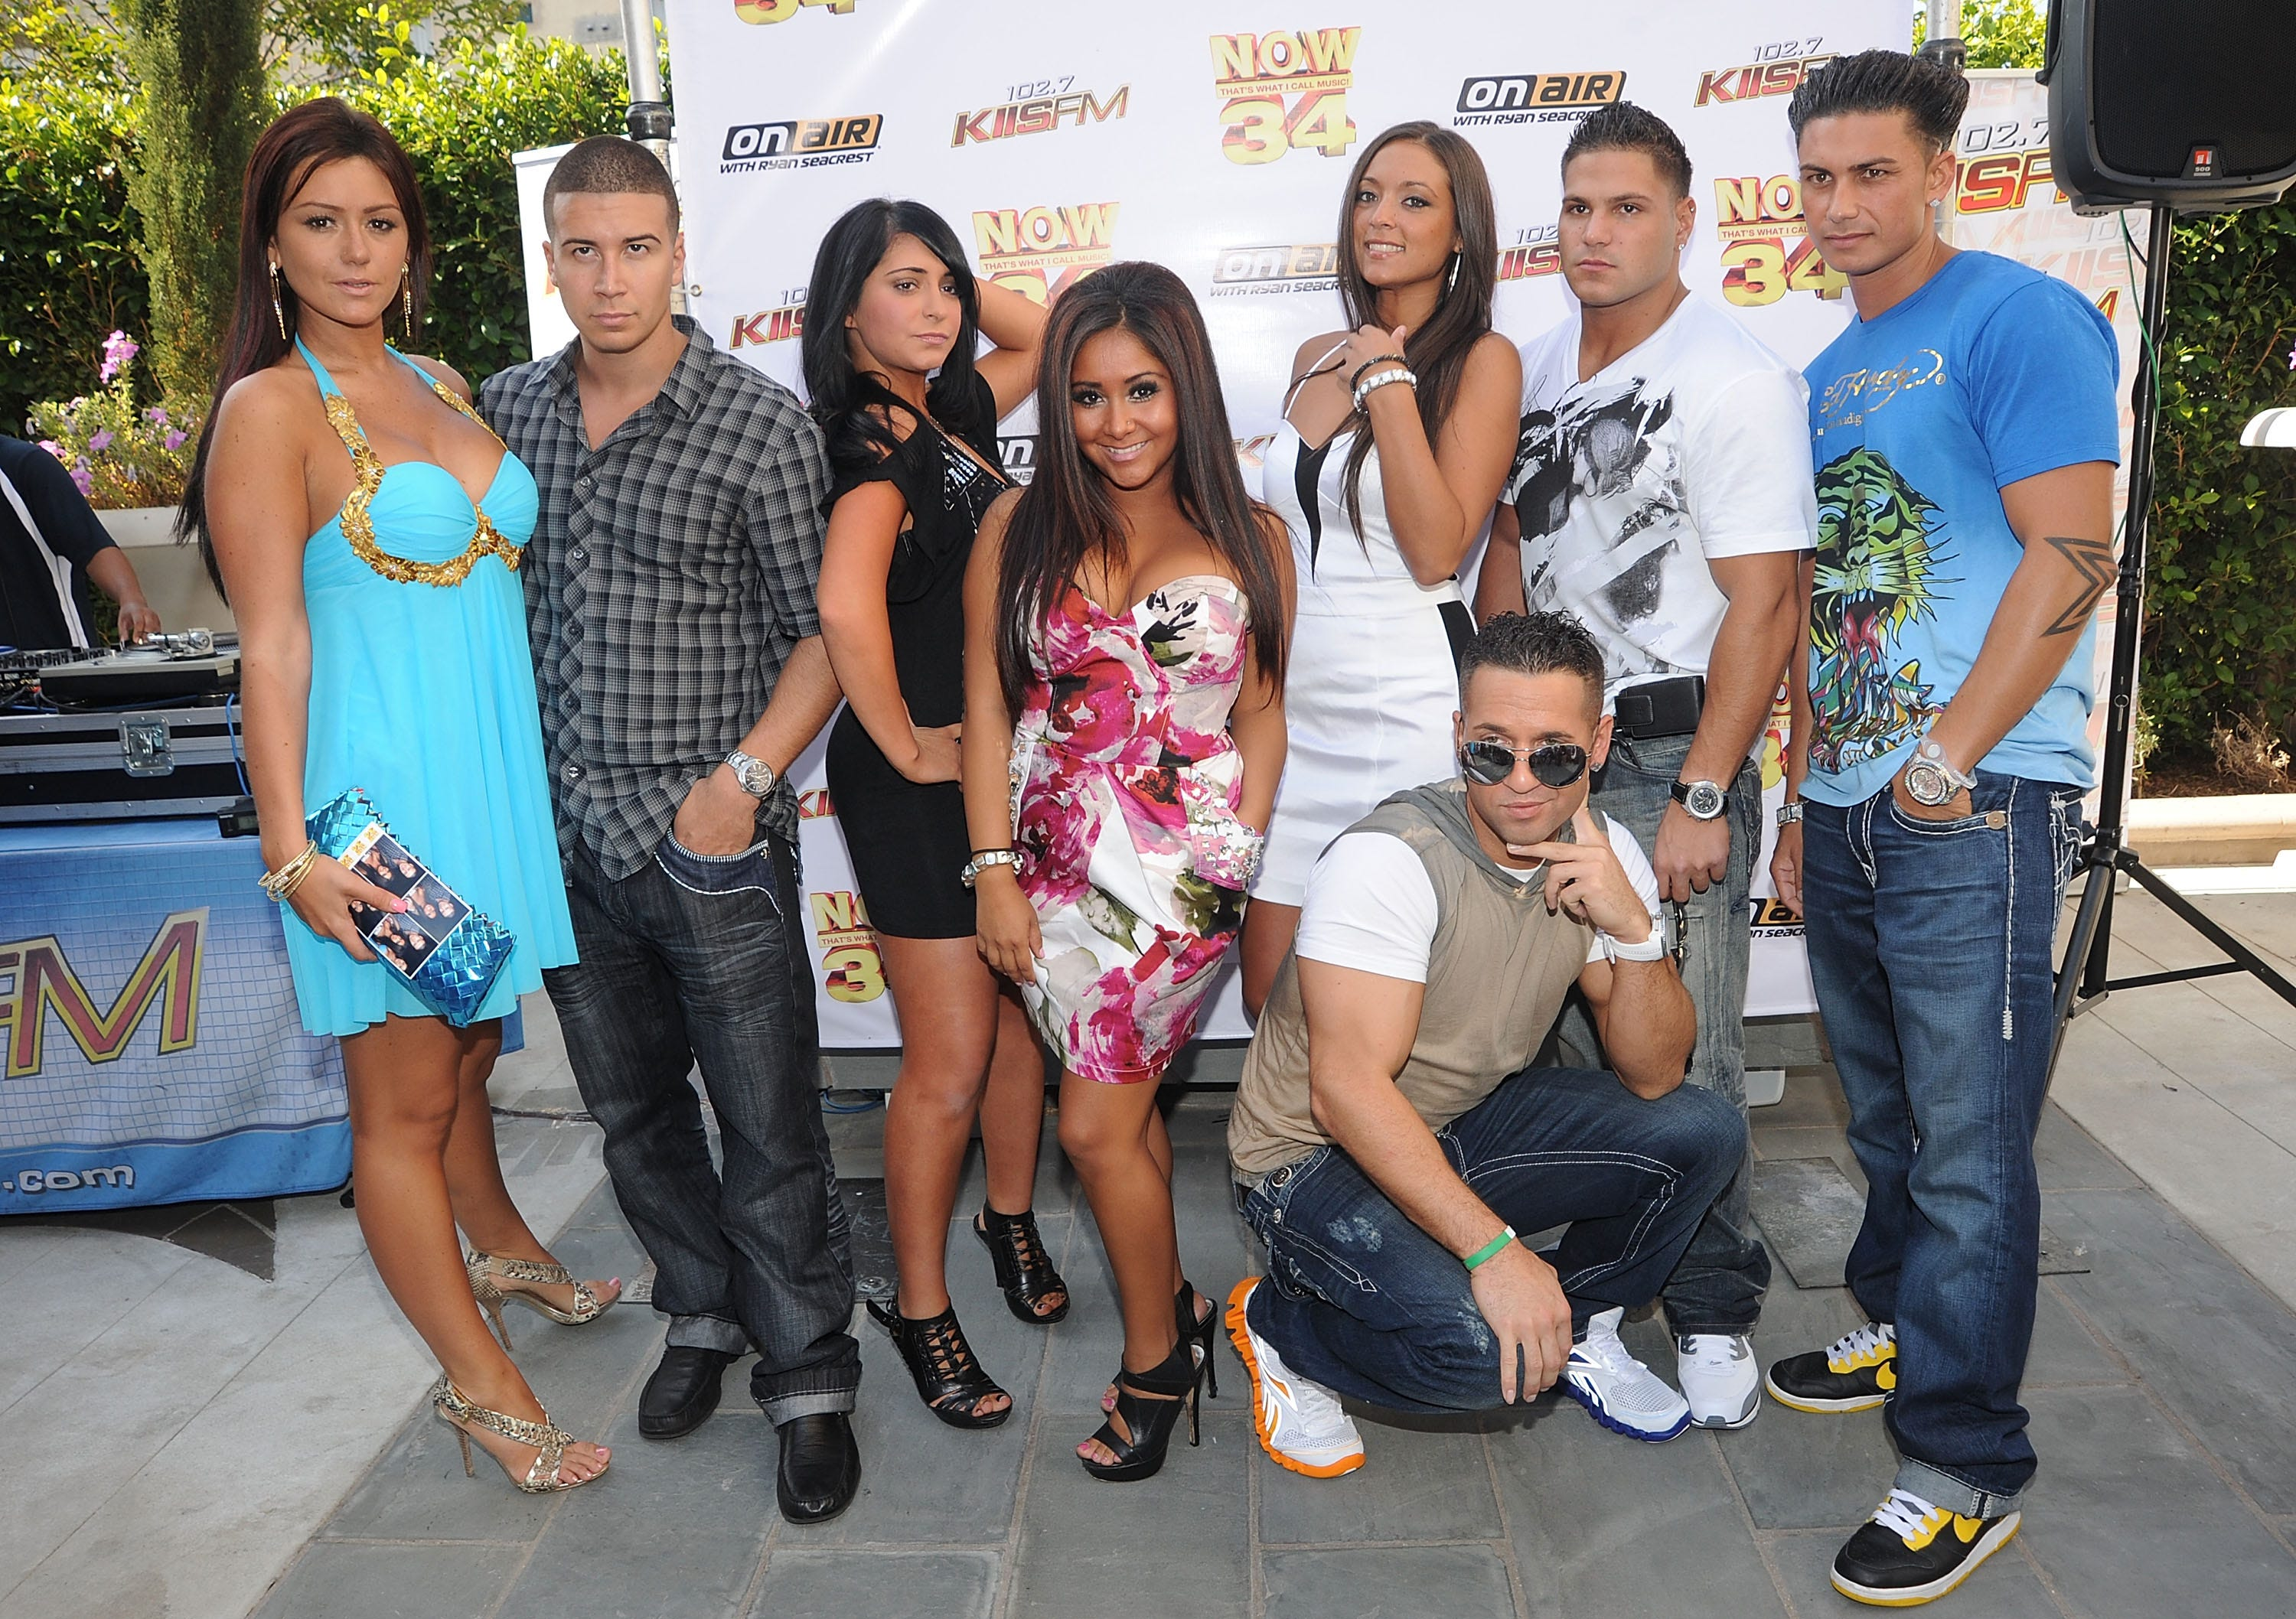 sam from jersey shore now